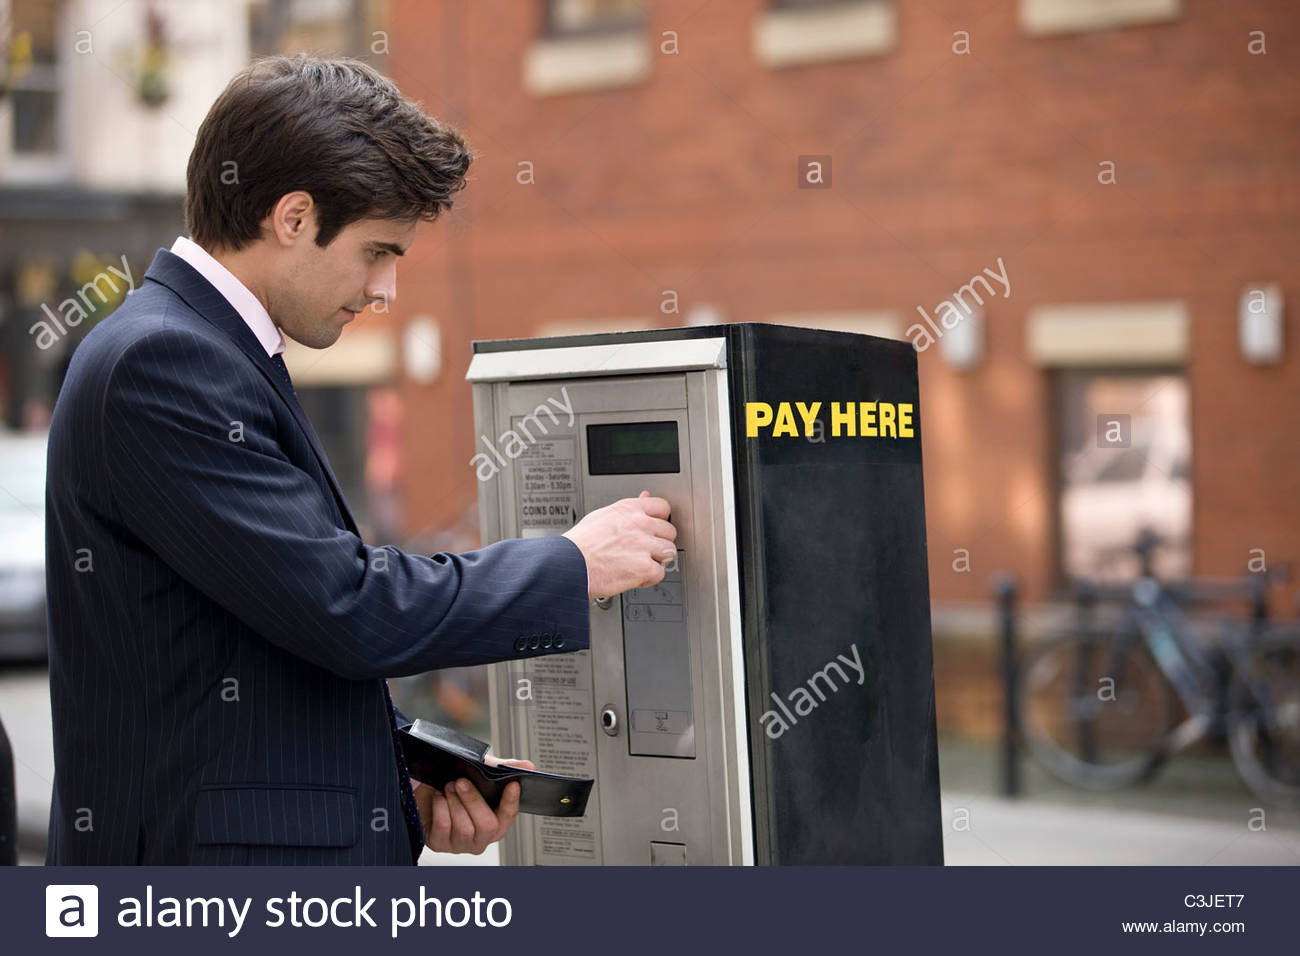 A businessman putting coins in a parking meter - Stock Image